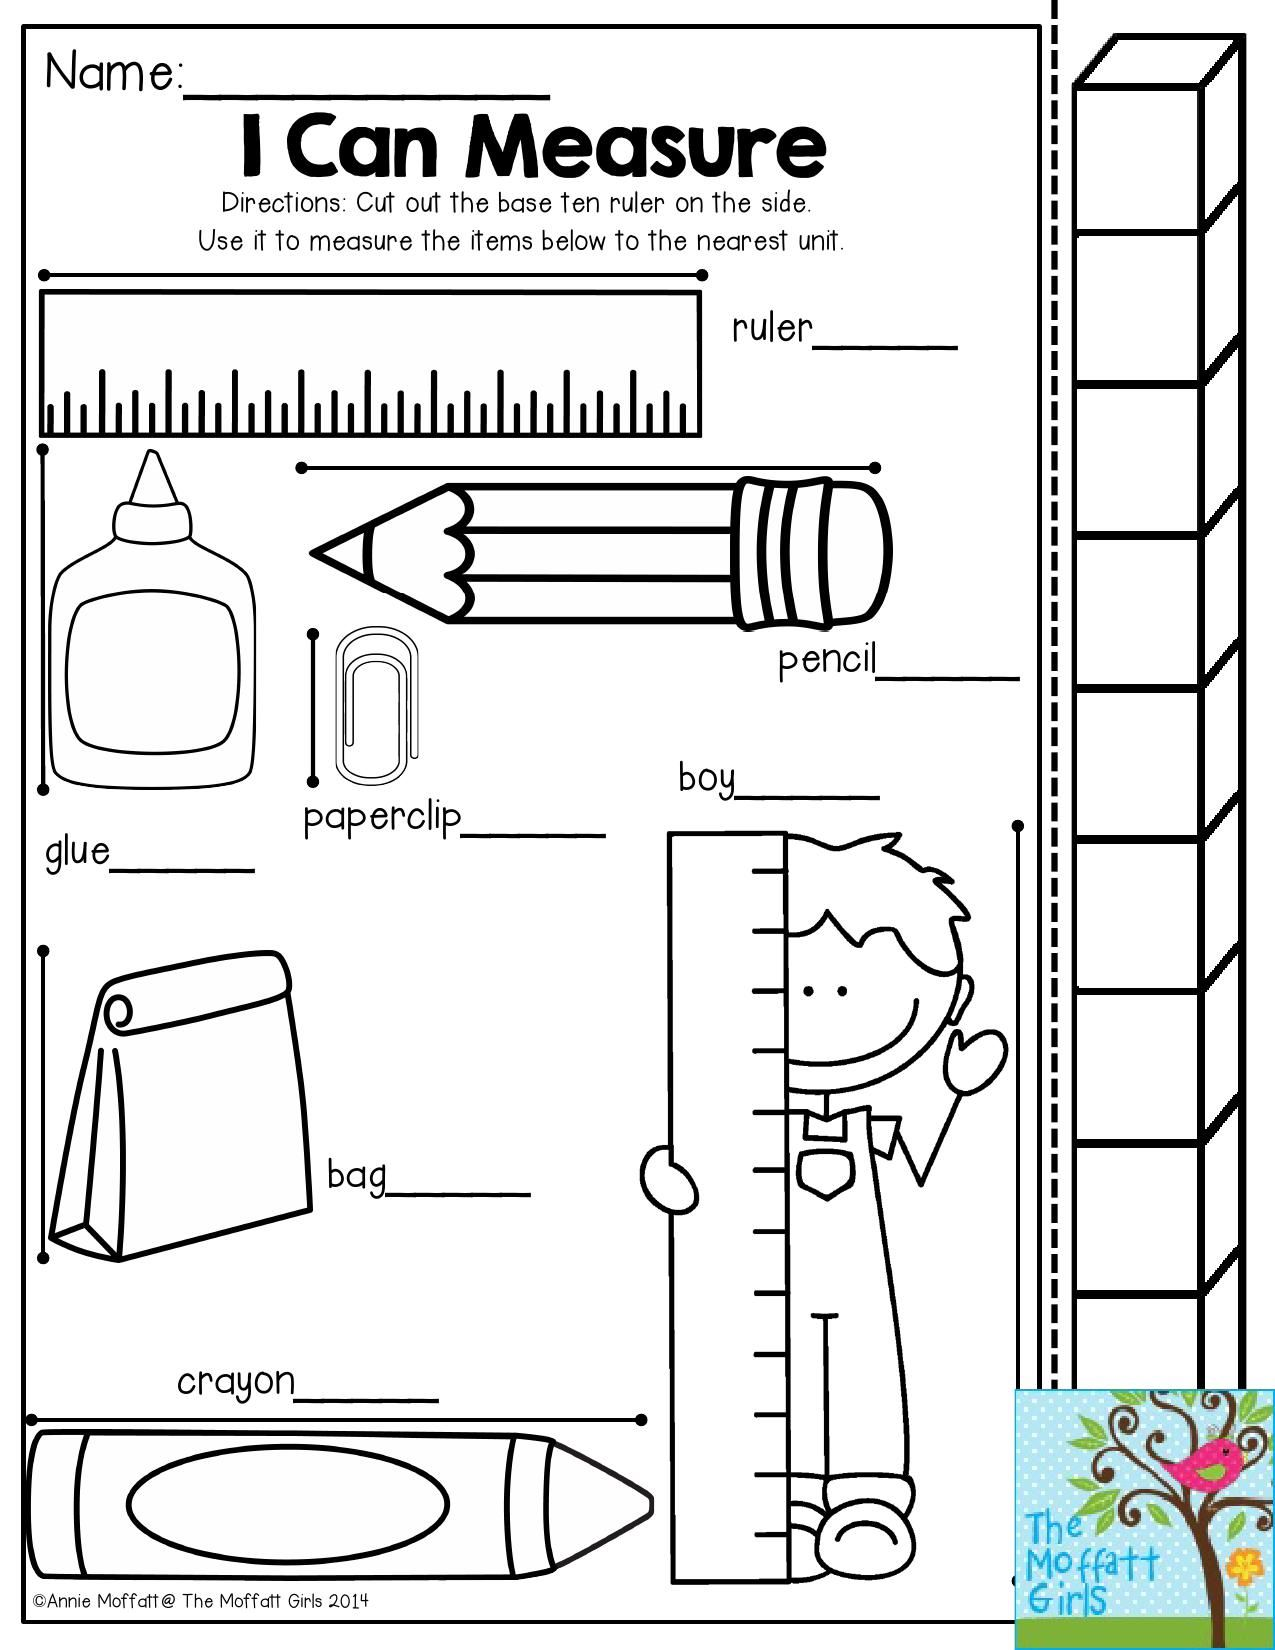 Worksheet Kindergarten Measurement i can measure have students use the measuring stick to see how many cubes each